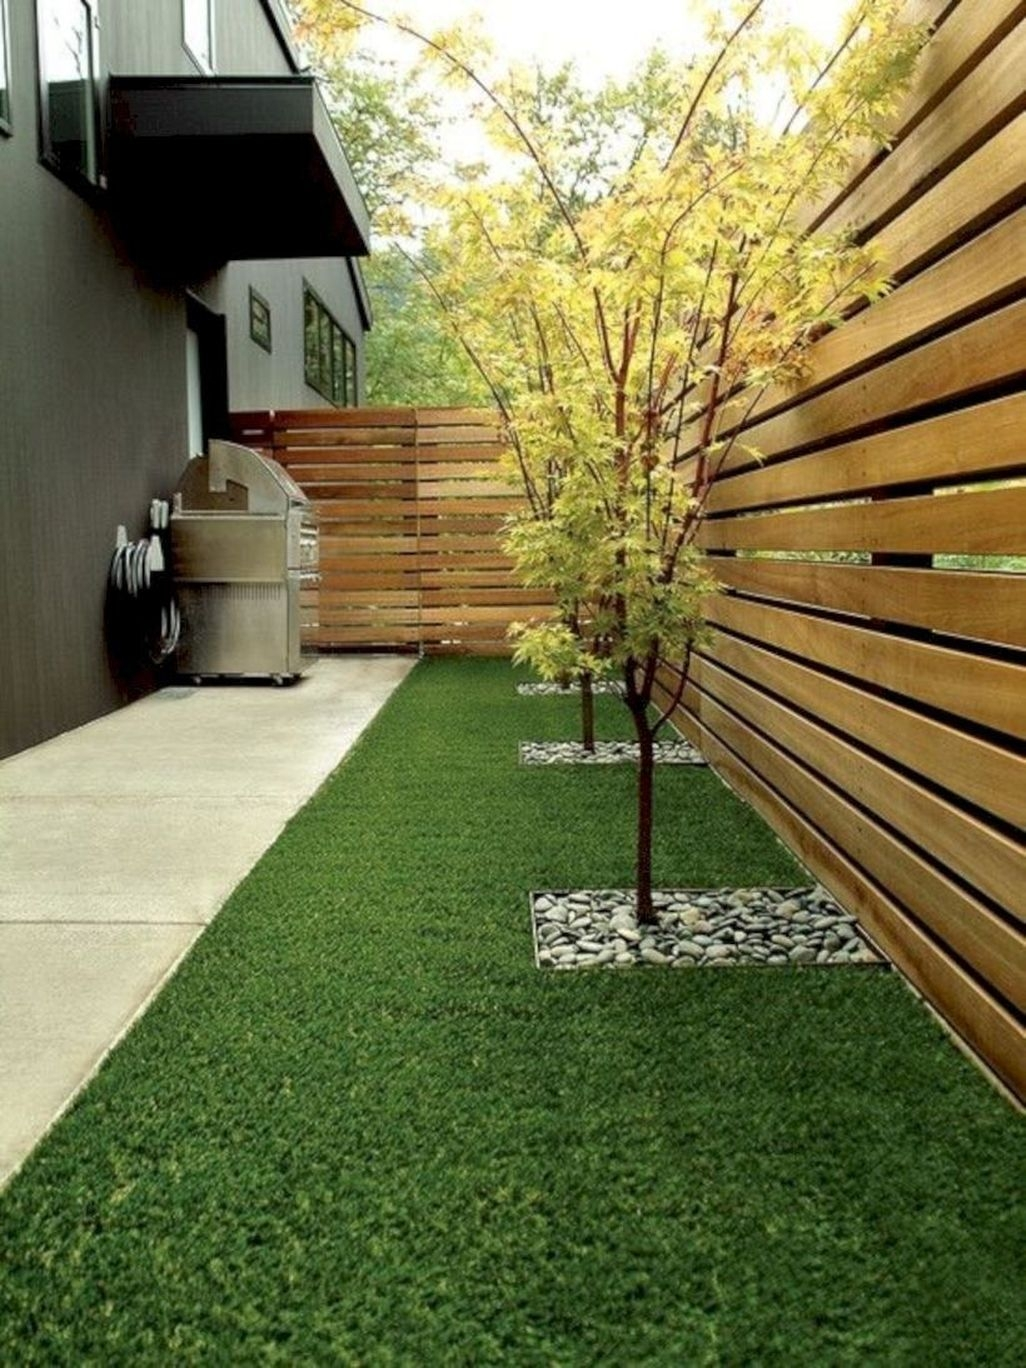 Adorable Wooden Privacy Fence Patio Backyard Landscaping Ideas 03